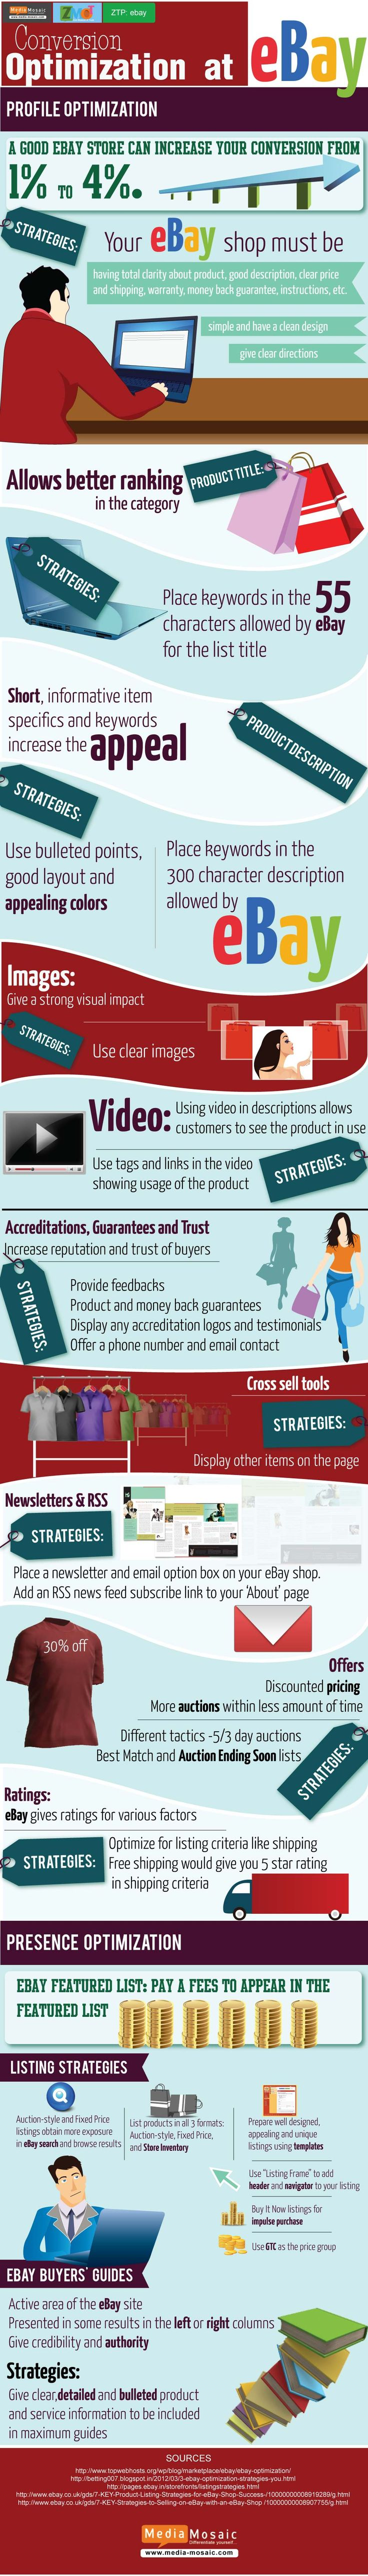 Best selling items on ebay reviews find out what sells best on ebay - From Media Mosaic Infographic Conversion Optimization At Ebay Strategies To Optimize Your Product